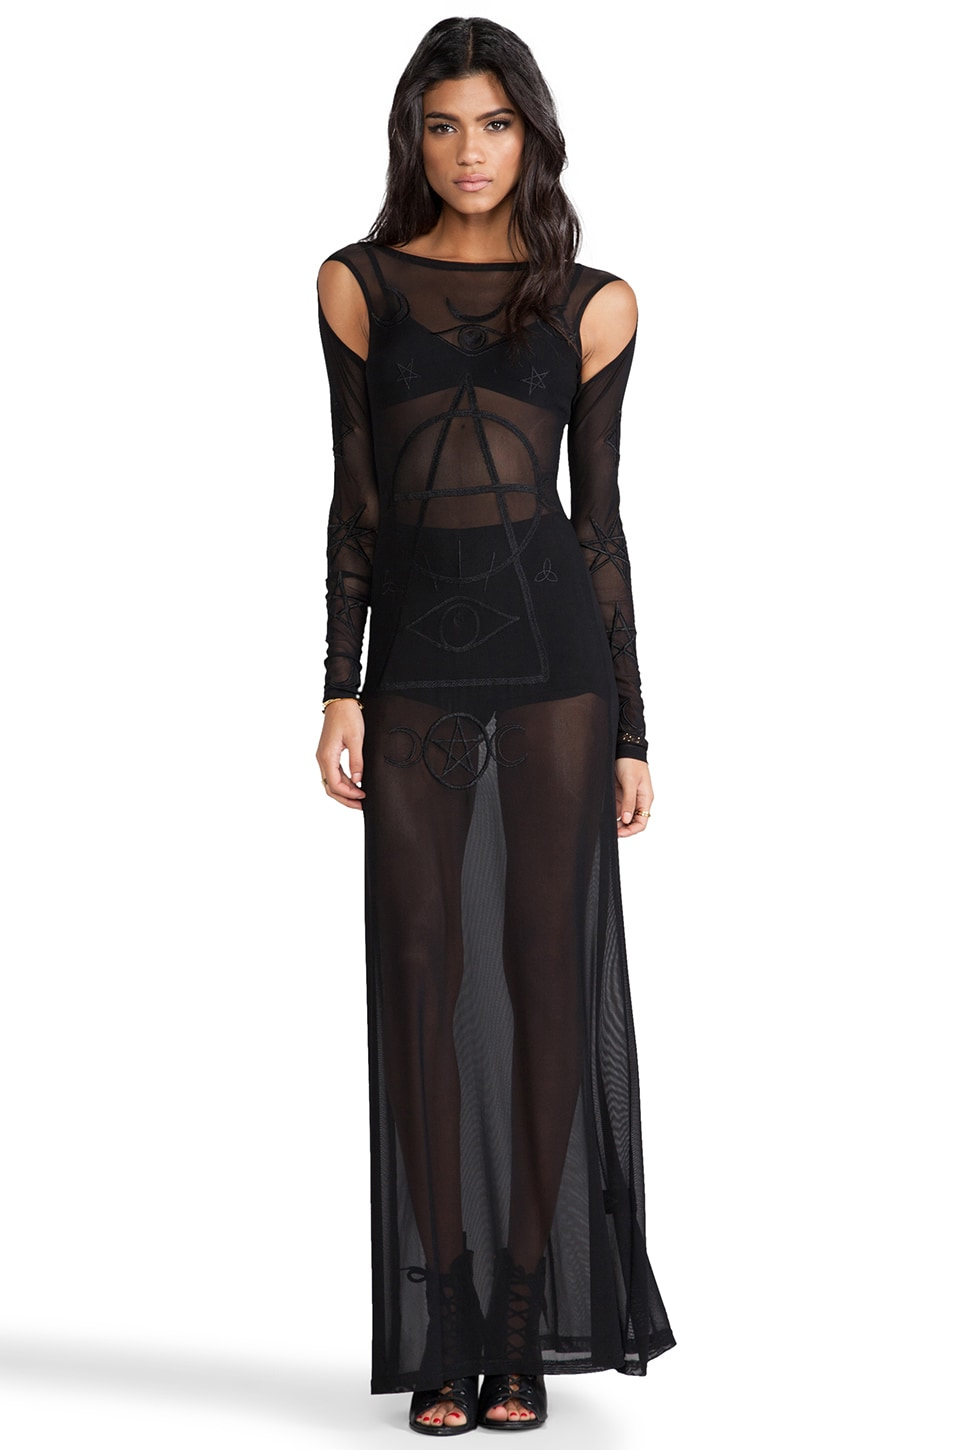 UNIF Wiccan Dress in Black